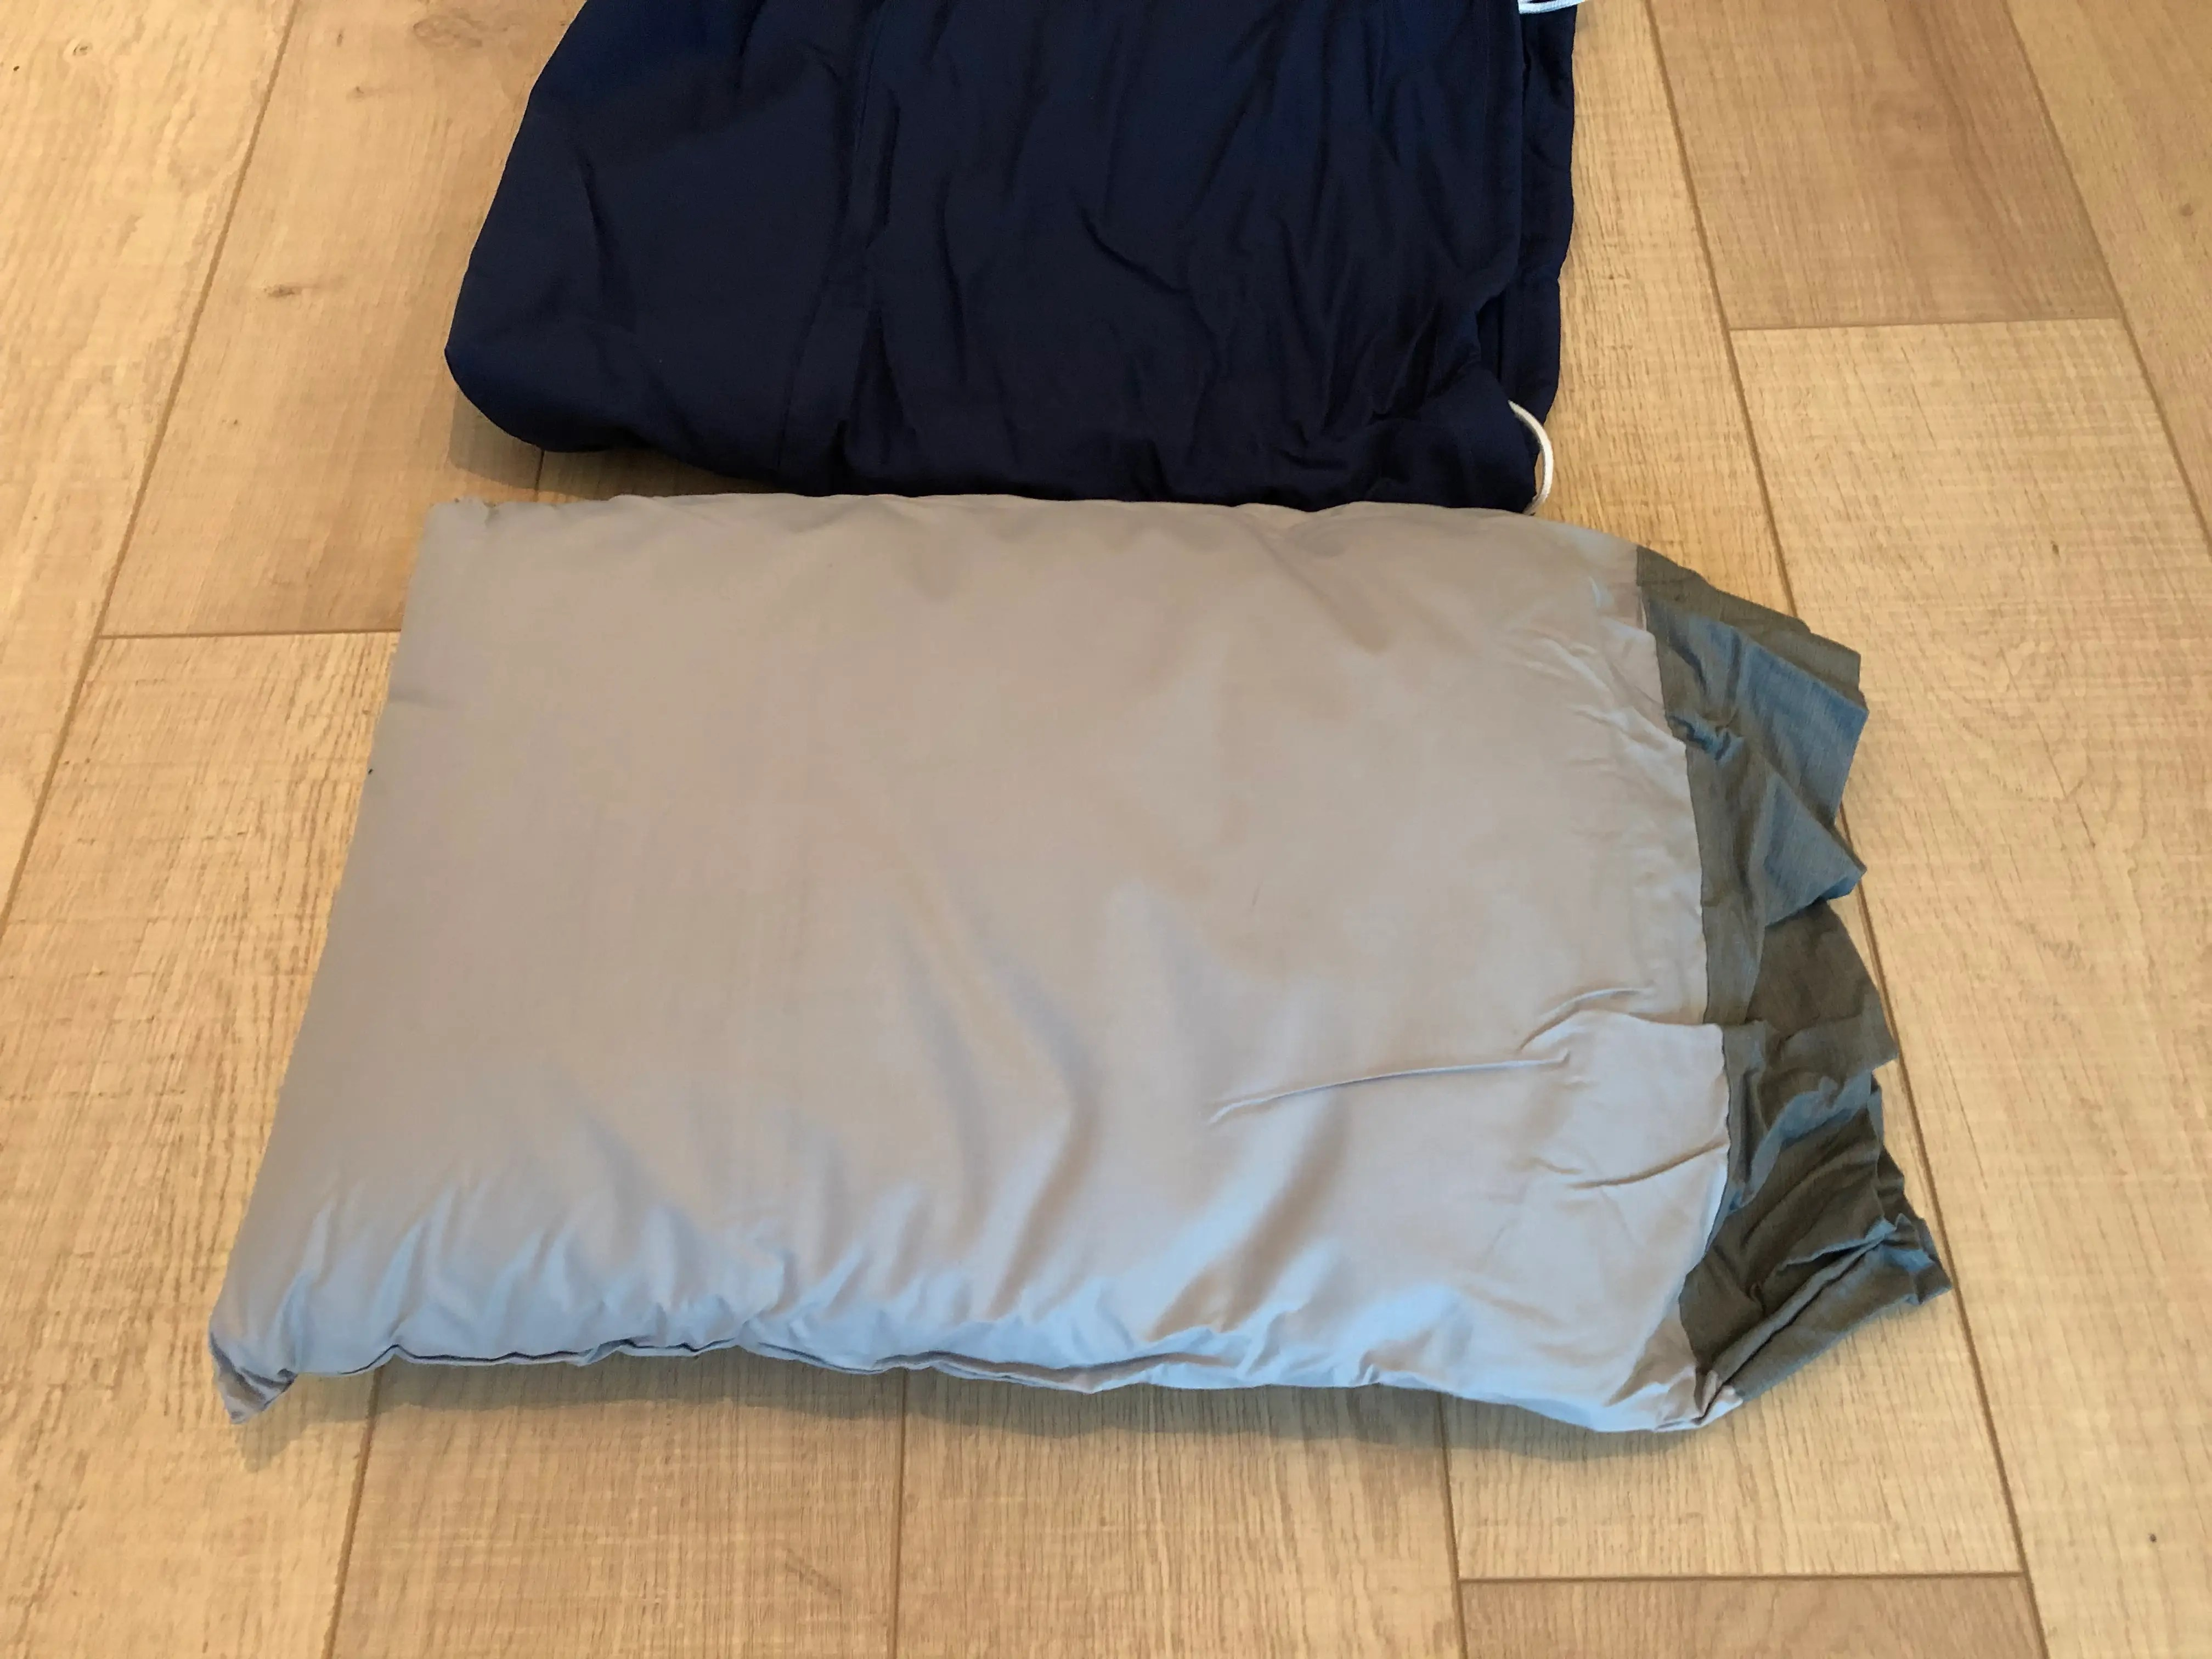 review casper s new nap pillow is too